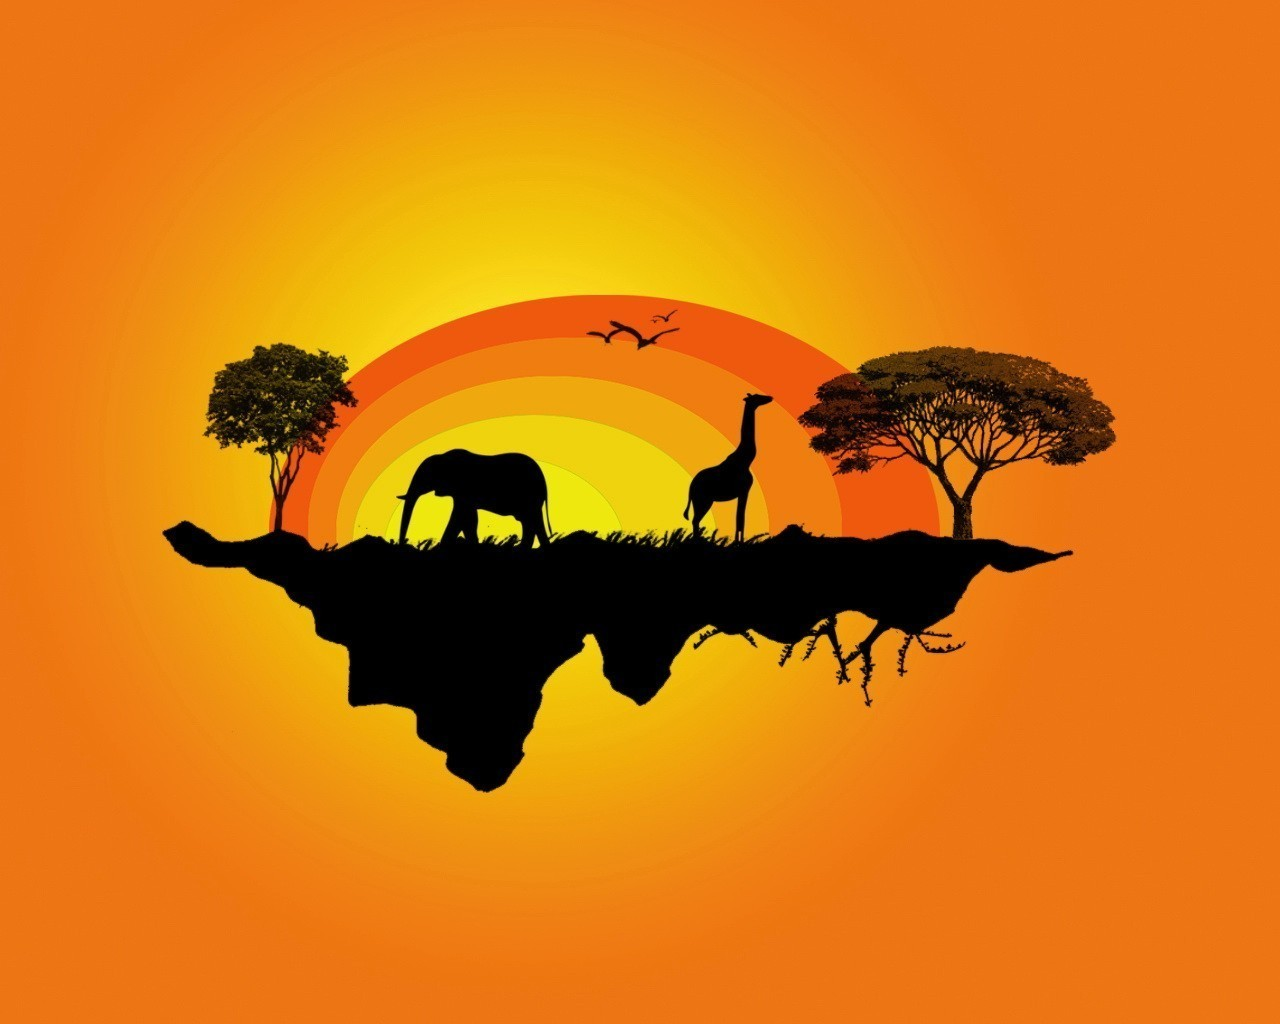 abstract silhouettes elephants Giraffes HD Wallpaper